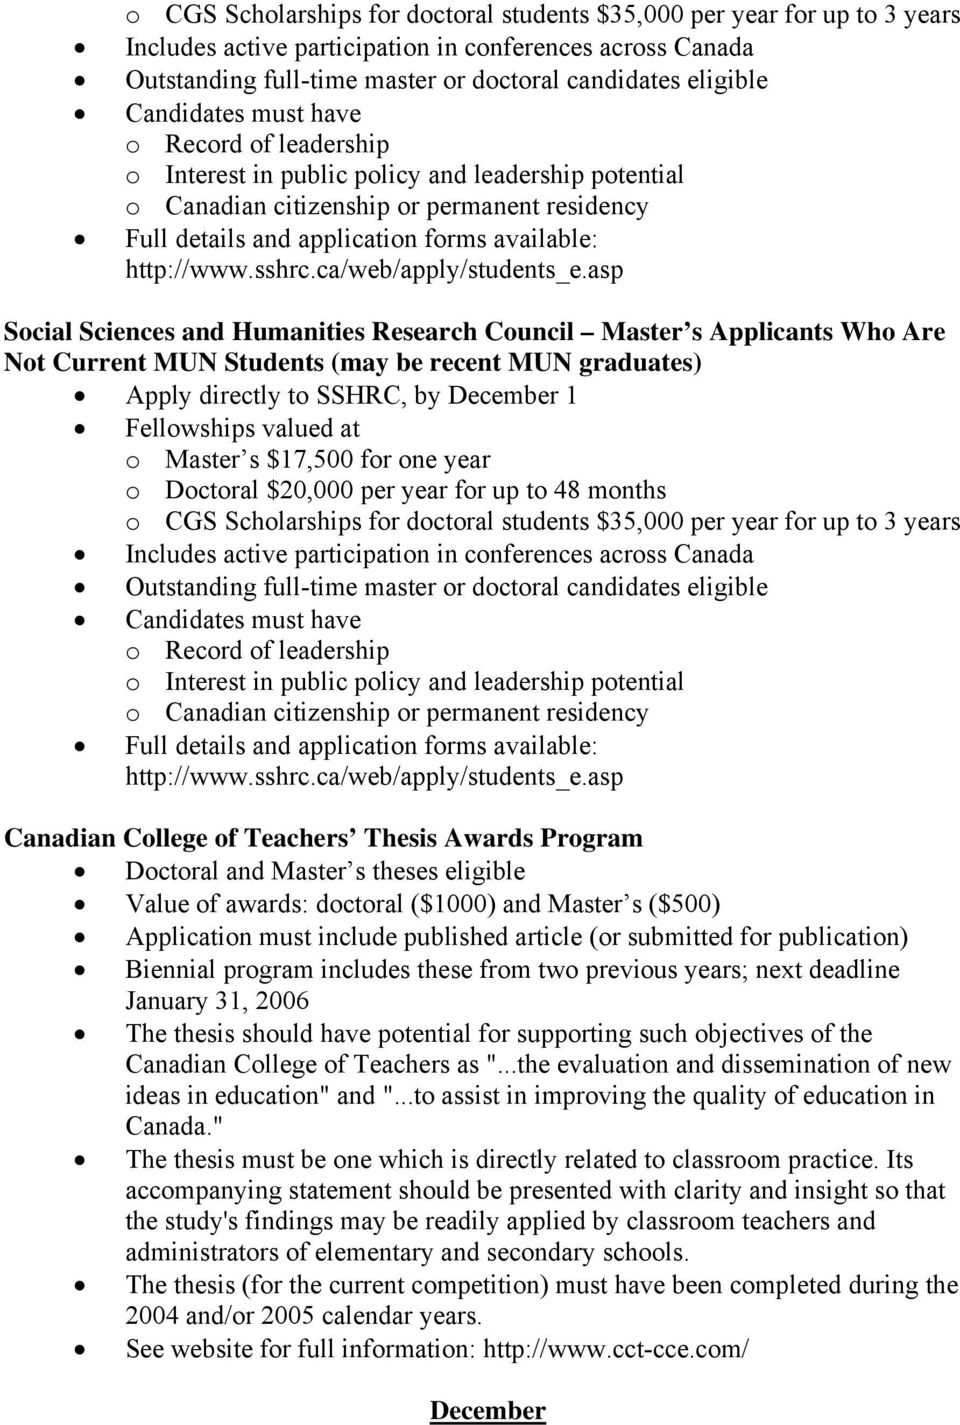 sshrc.ca/web/apply/students_e.